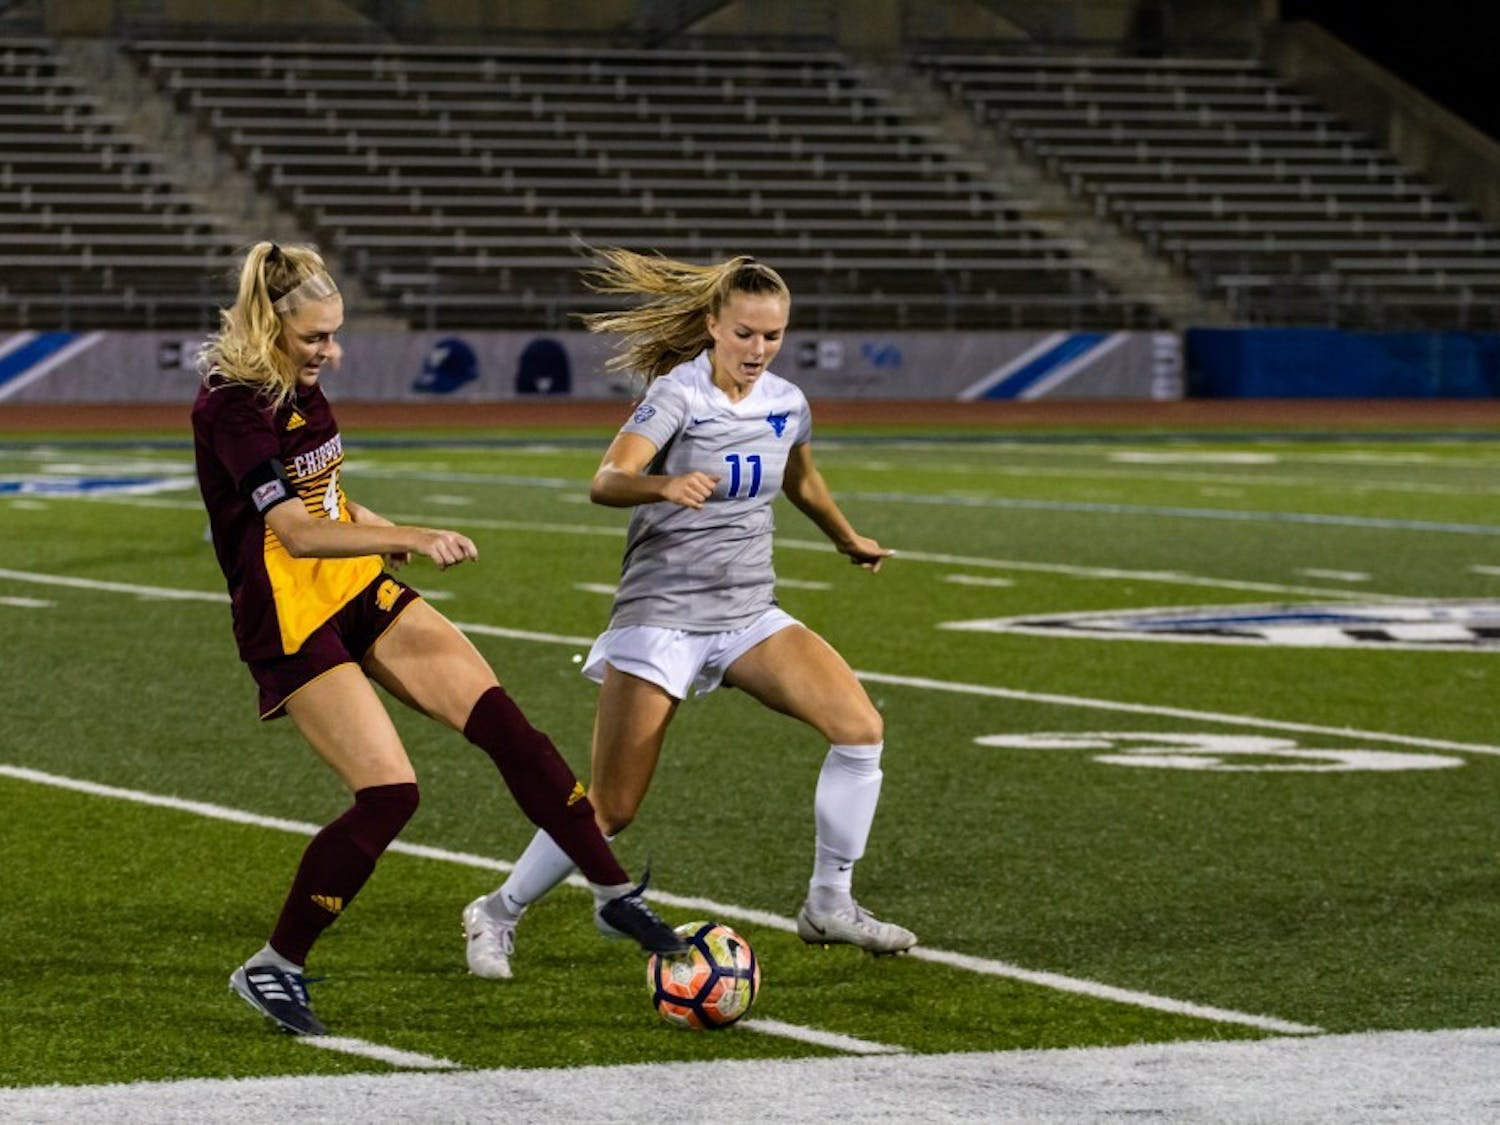 UB women's soccer beat Miami(OH) 5-1 on Sunday marking their first win of the season.